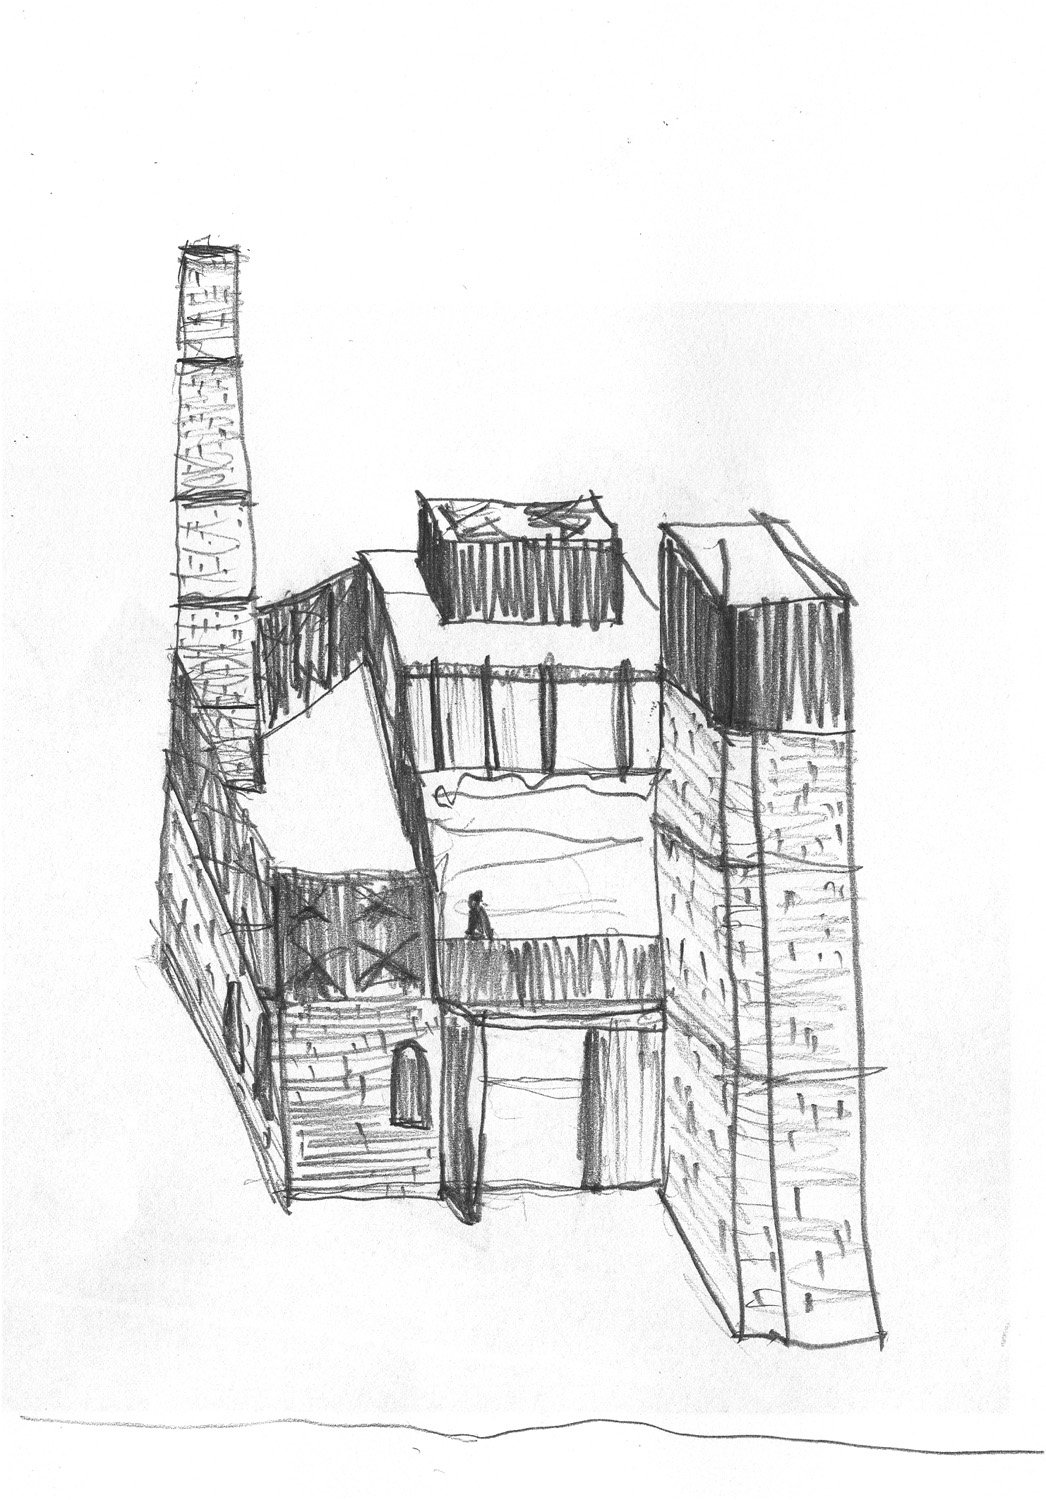 Goldsmiths Sketch